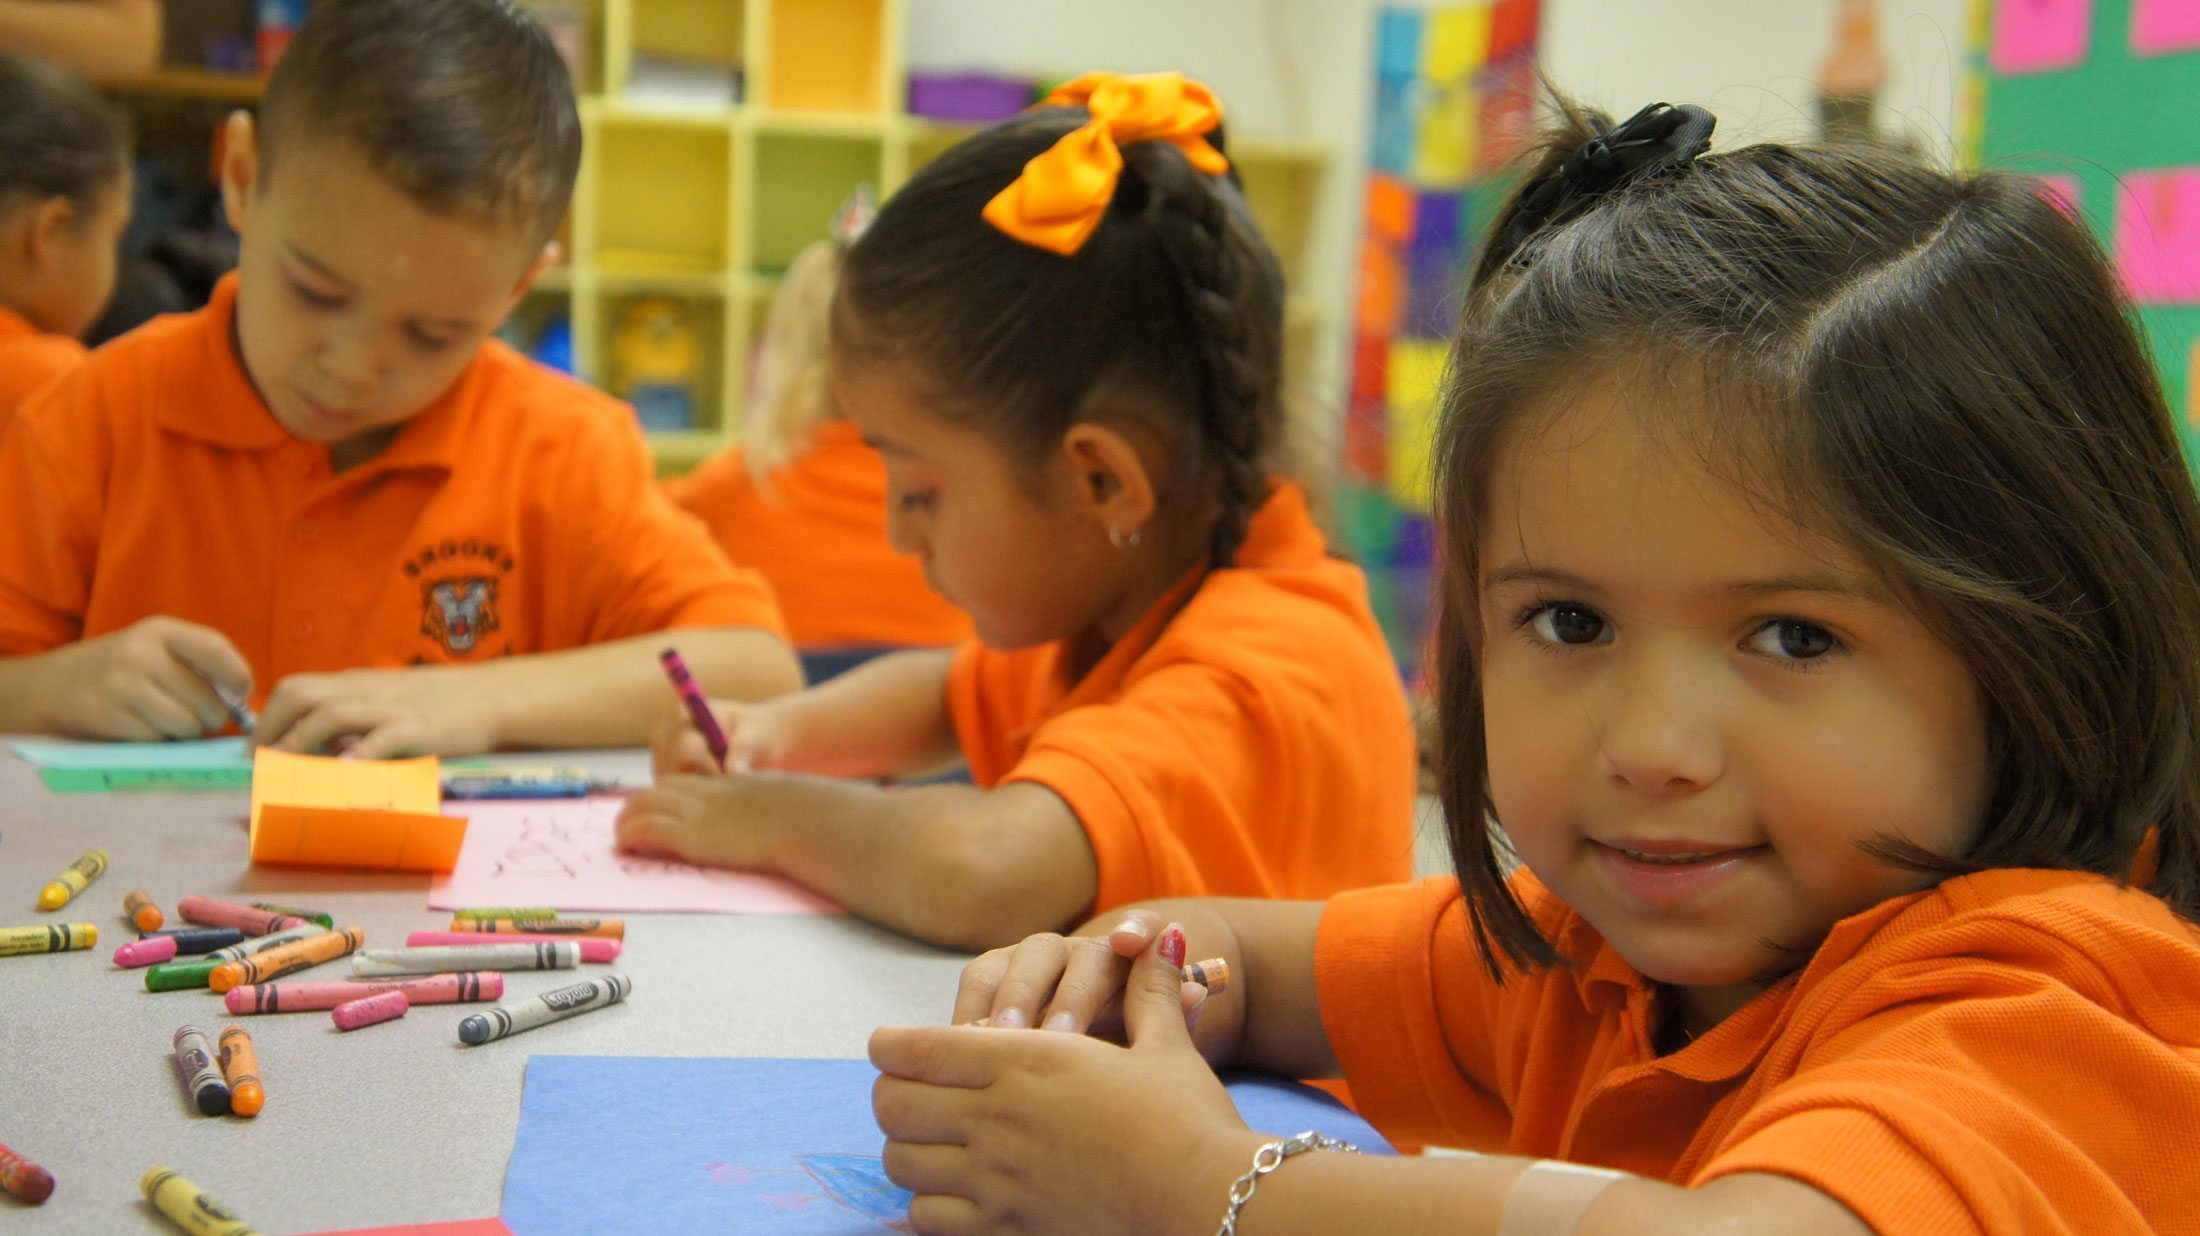 Another attempt by districts to keep funds from charter school students